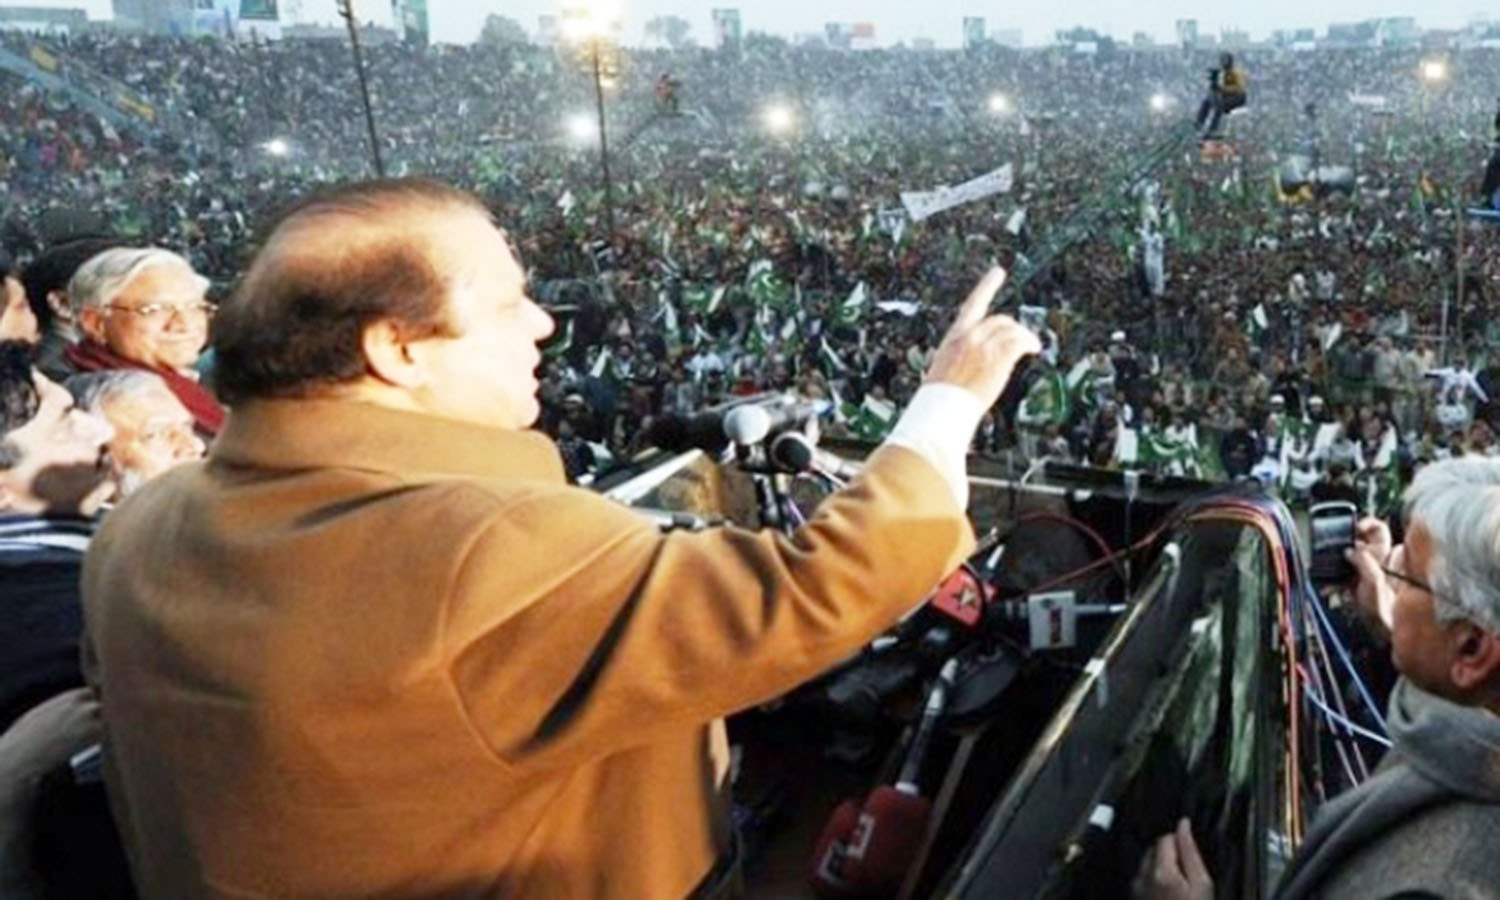 The current Pakistan PM and chief of the centrist PML-N, Nawaz Sharif, speaking at a rally in the Punjab city of Gujranwala. The PML-N has been Punjab's largest political party ever since the 1990s.